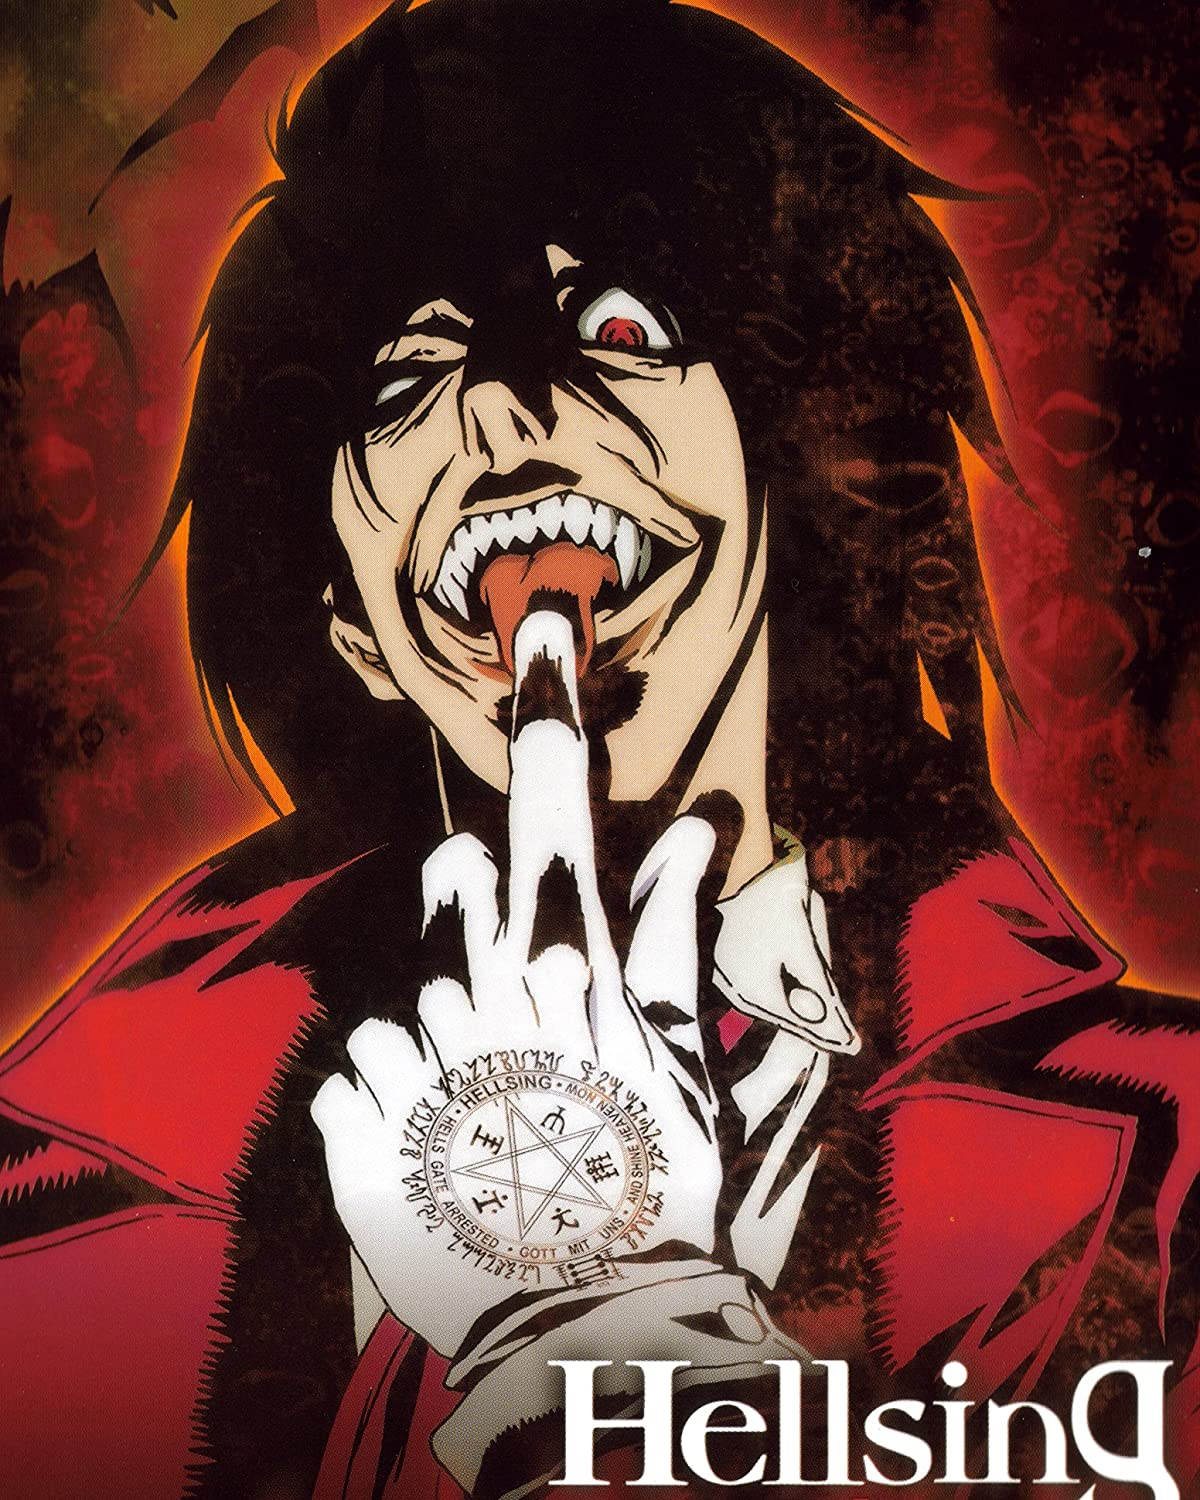 Amazon Com Superior Posters Hellsing Anime Poster Vampire Fighting Japan Hot Art Manga Alucard Wall Print Japanese Home Decor 16x20 Inches Home Kitchen